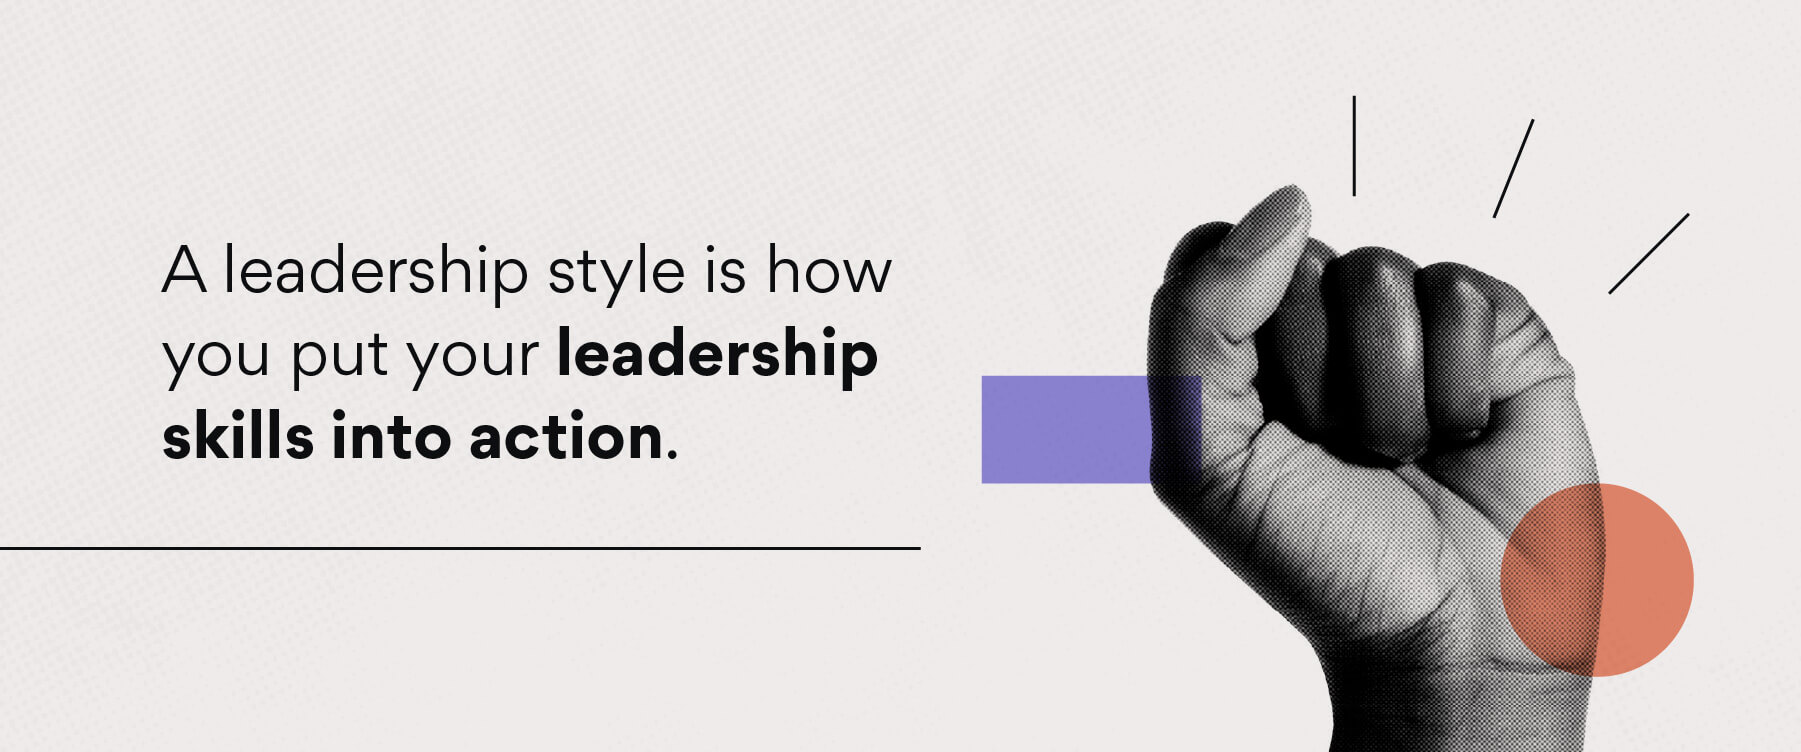 Turning leadership styles into action